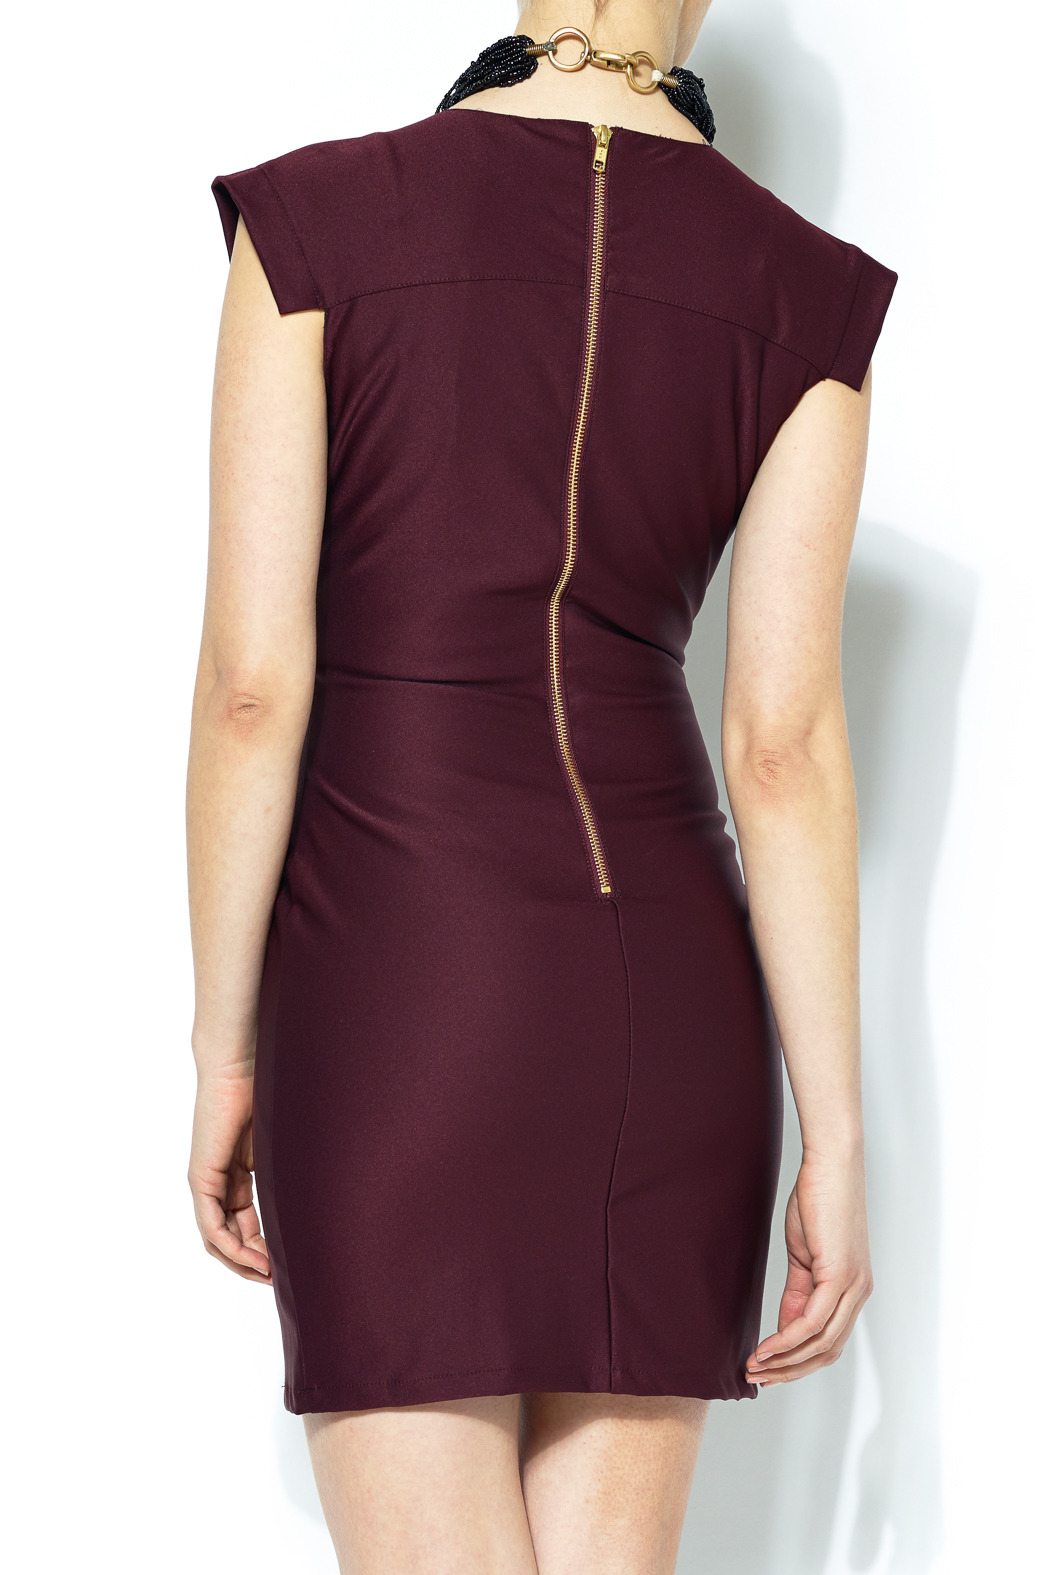 Mm Couture Exposed Zipper Dress From Bucktown By Beyond